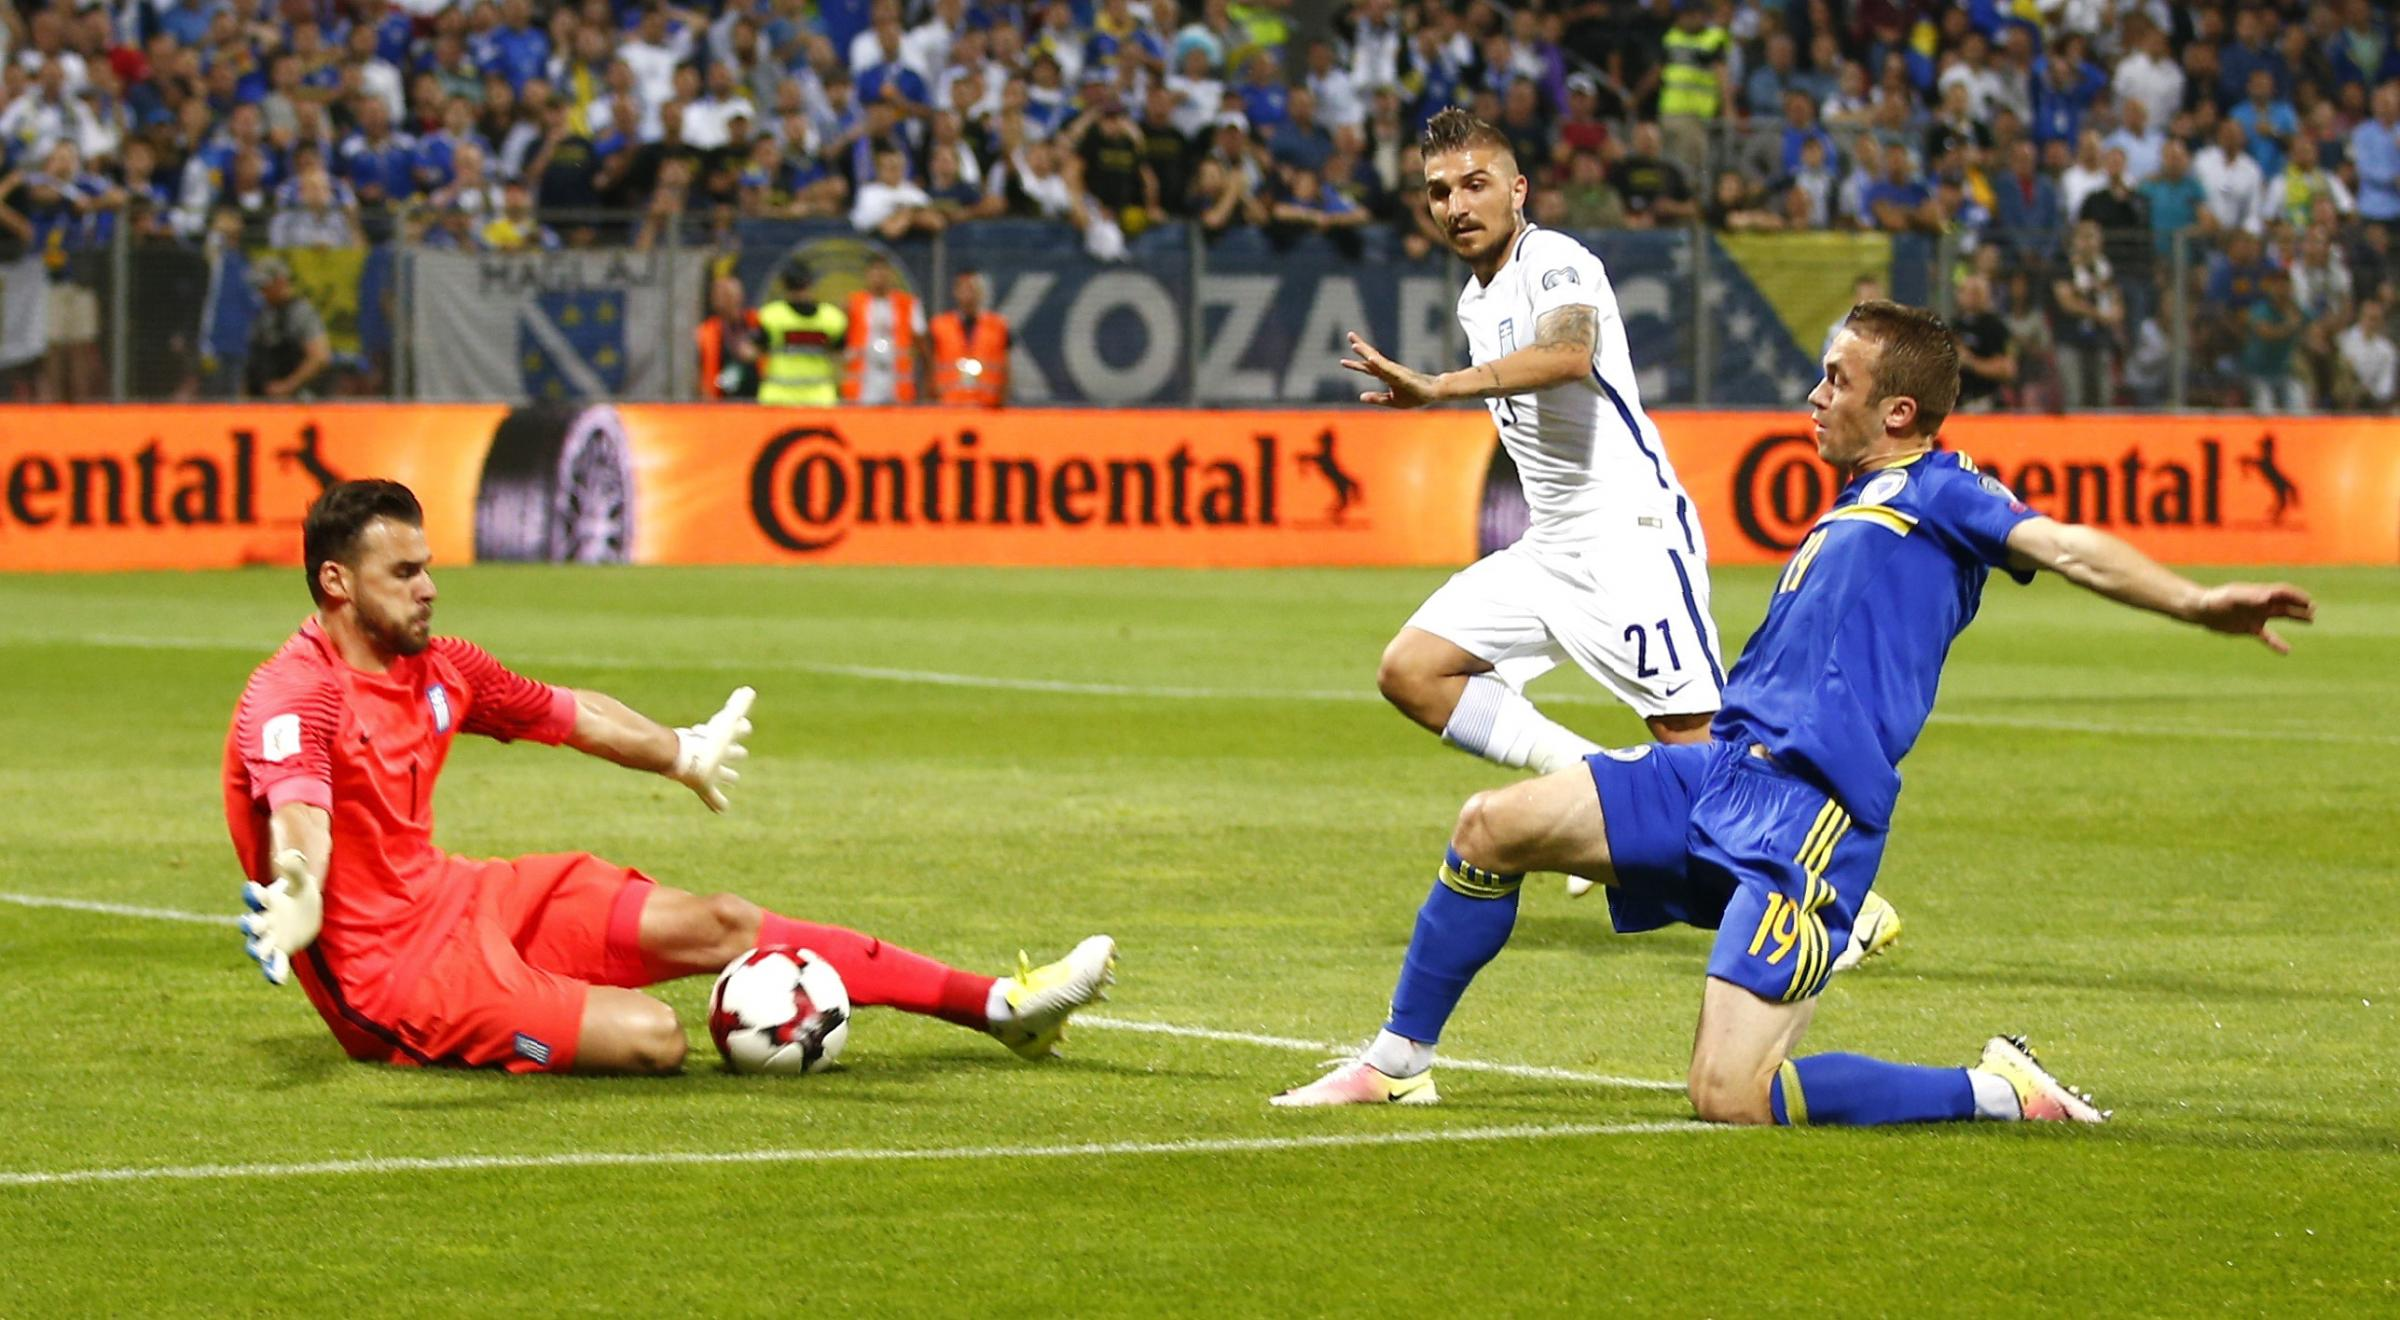 Orestis Karnezis (left) could do little as Greece fell to a 2-1 defeat to Belgium last night. Picture: Action Images